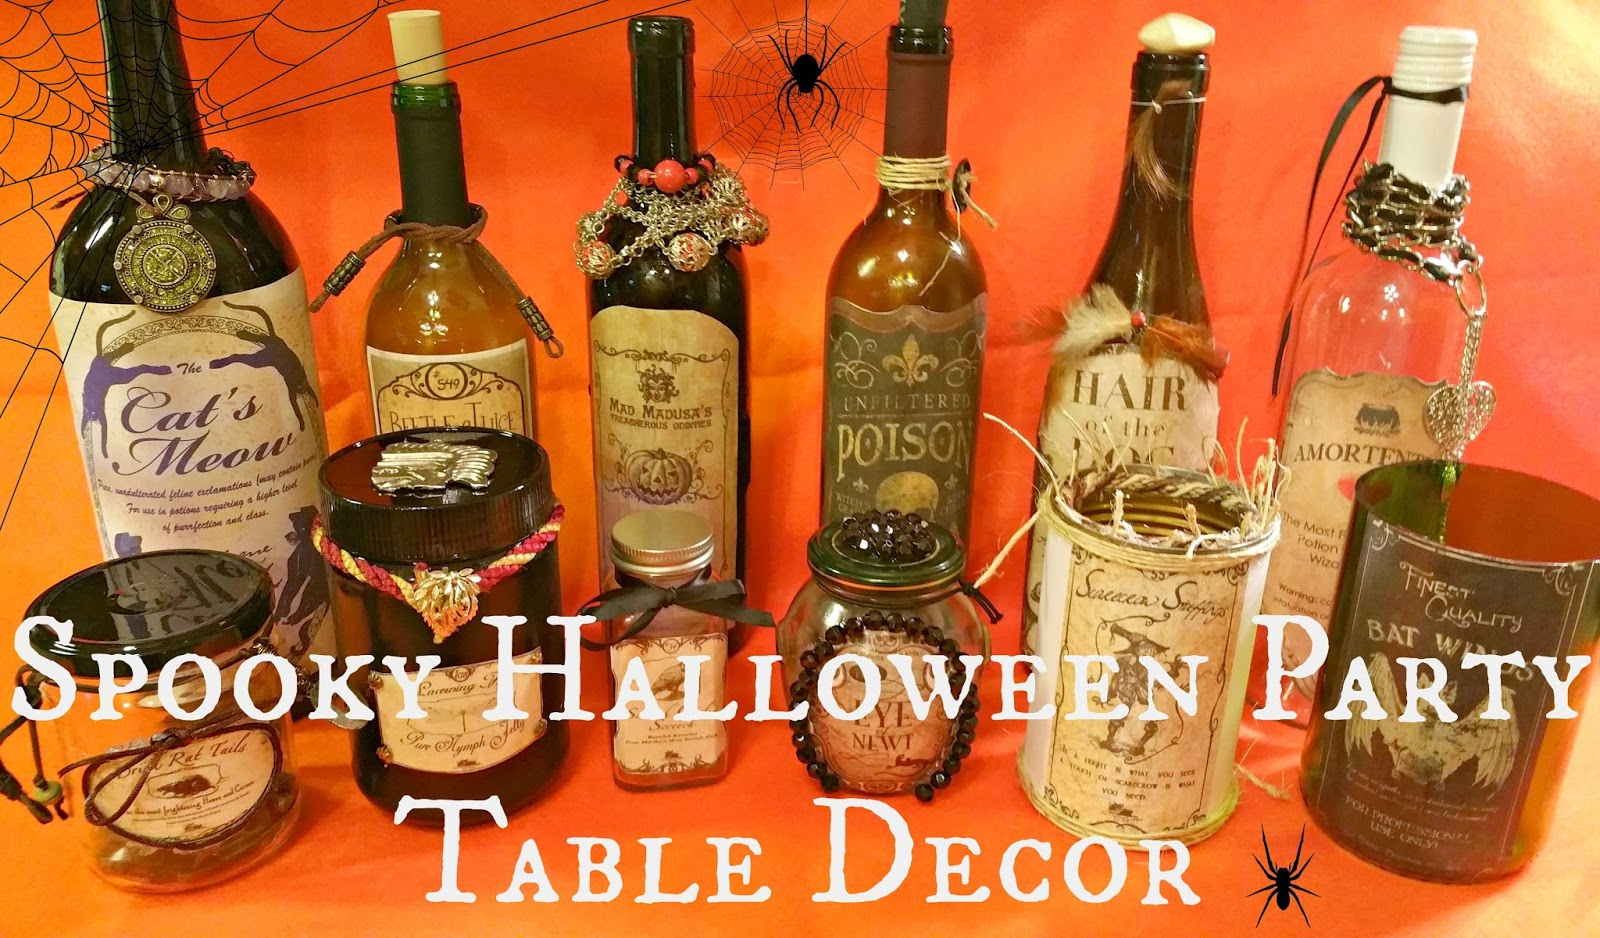 Spooky Halloween Party Table Decor | Redo It Yourself Inspirations ...